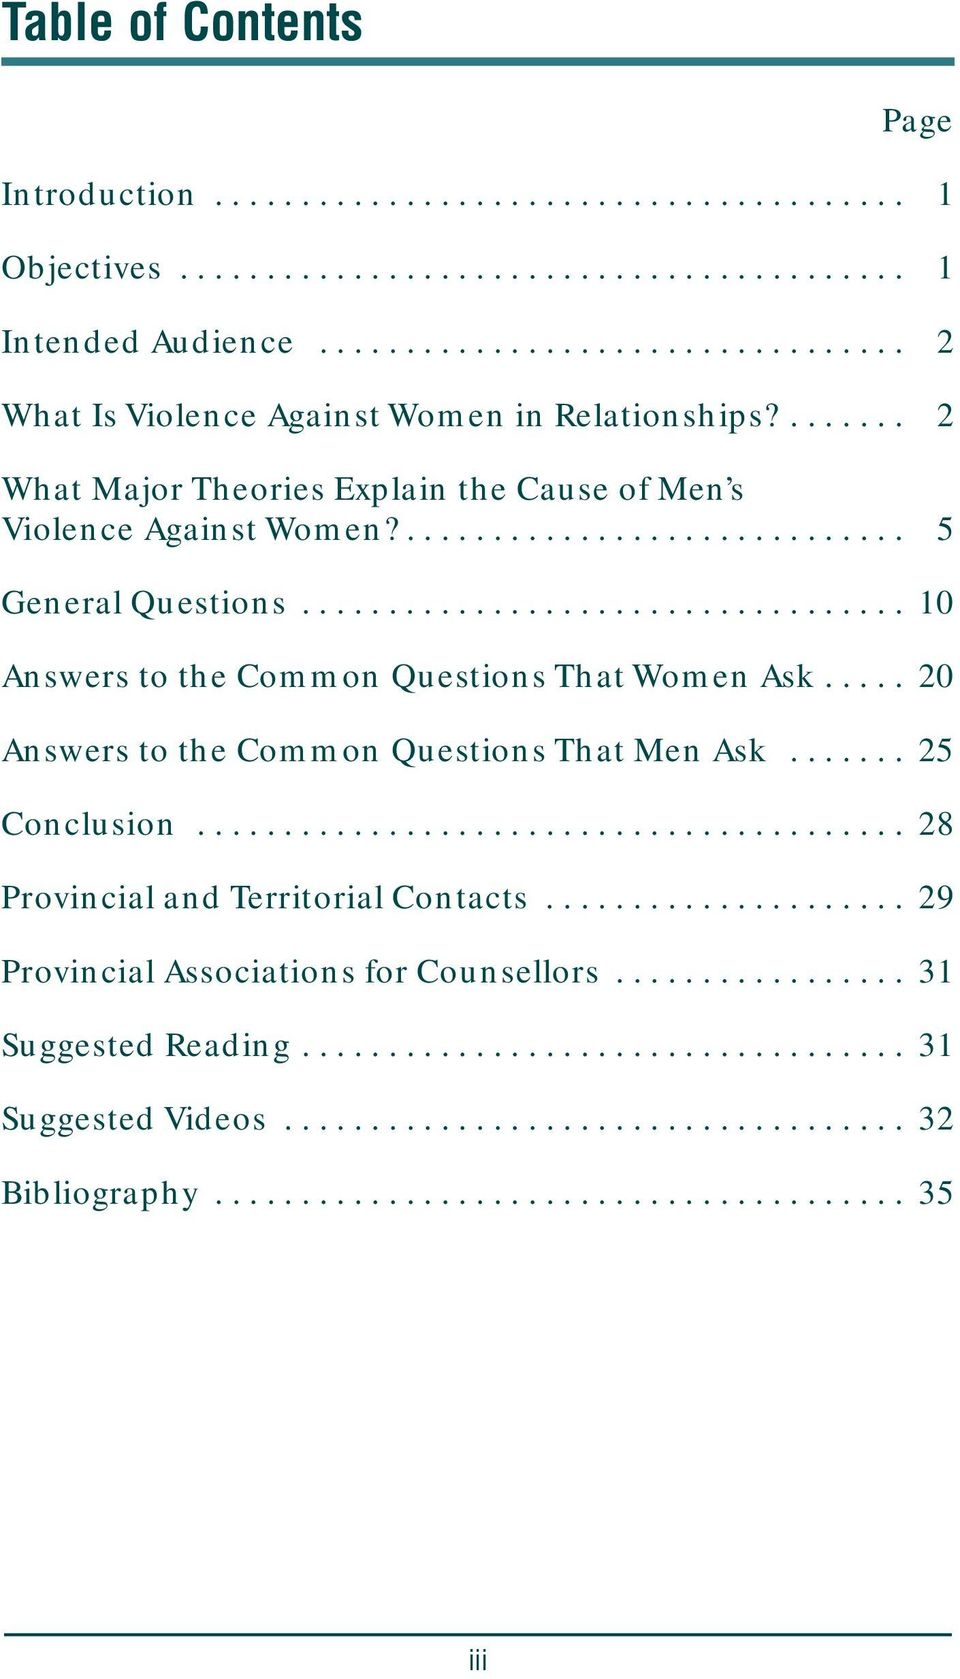 .................................. 10 Answers to the Common Questions That Women Ask..... 20 Answers to the Common Questions That Men Ask....... 25 Conclusion......................................... 28 Provincial and Territorial Contacts.